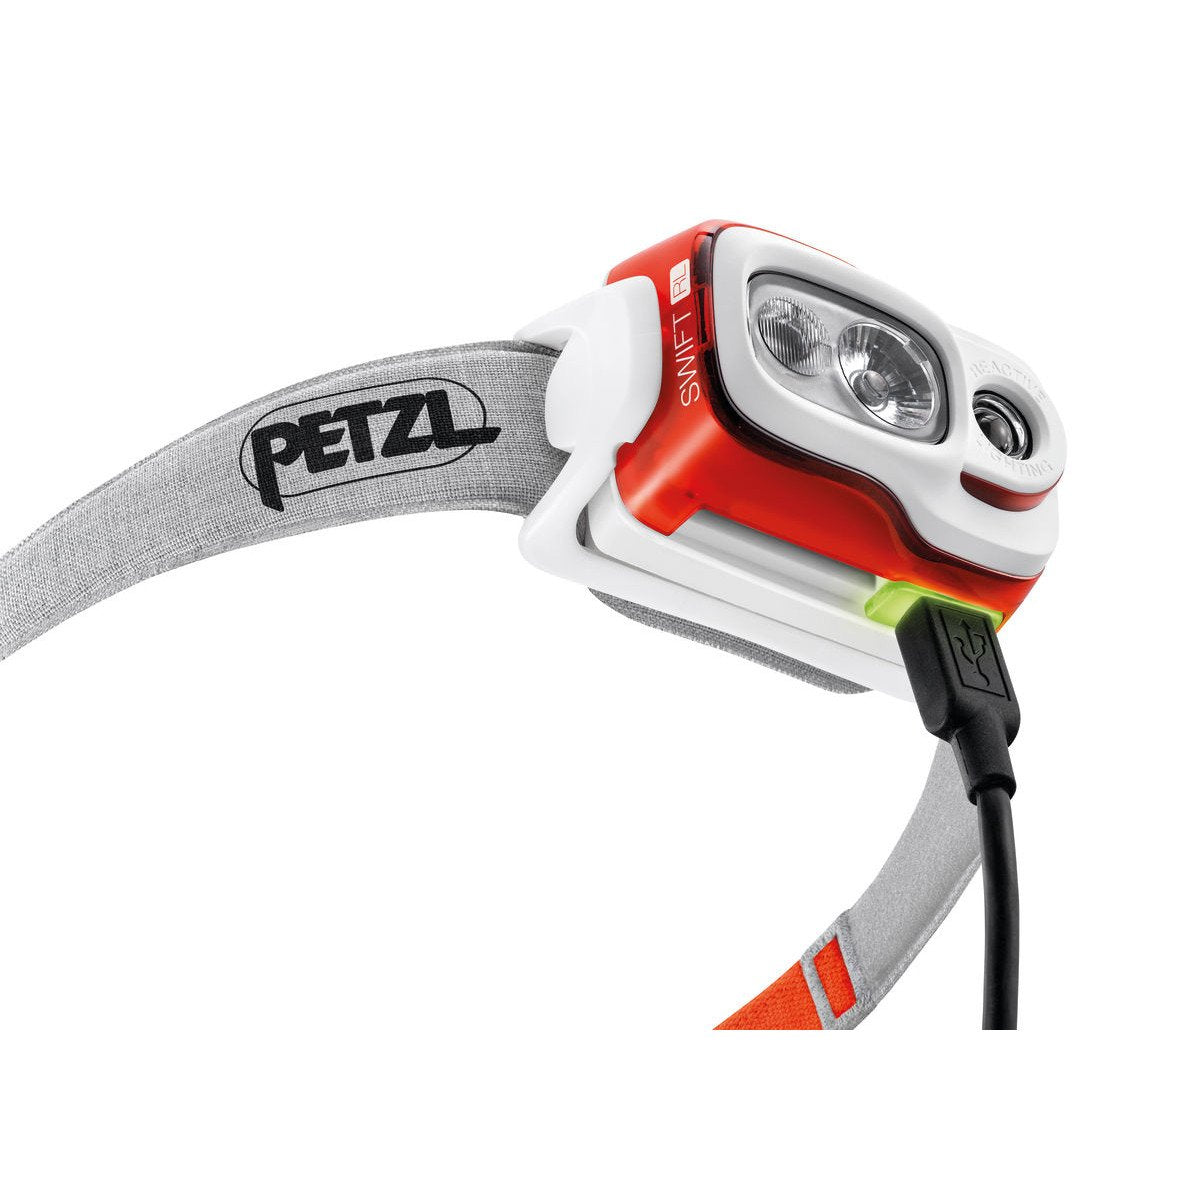 Charging port on Petzl Swift RL Headtorch with wire plugged in